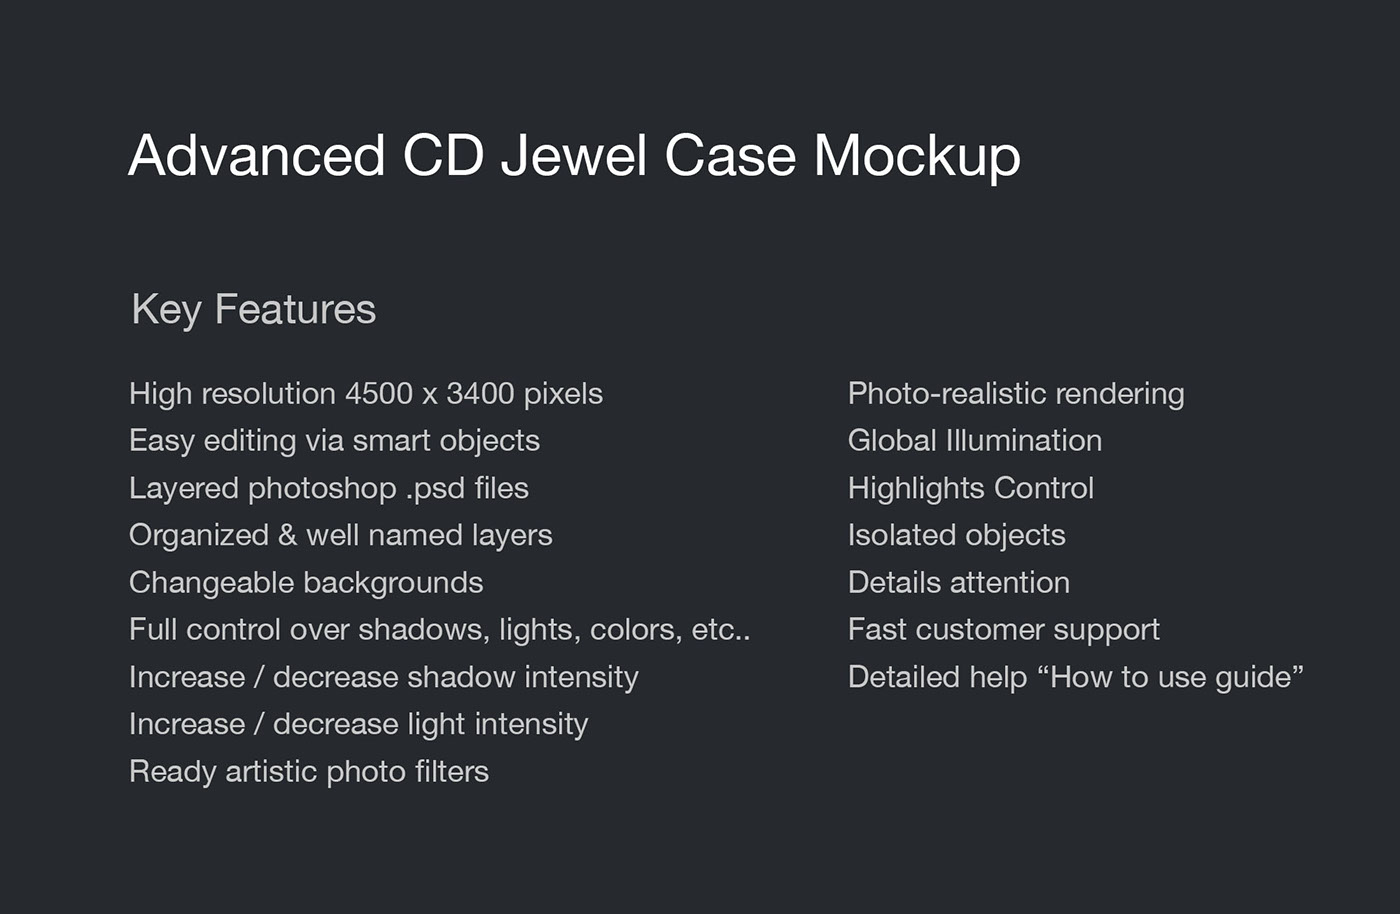 cd jewel case mockup psd on behance